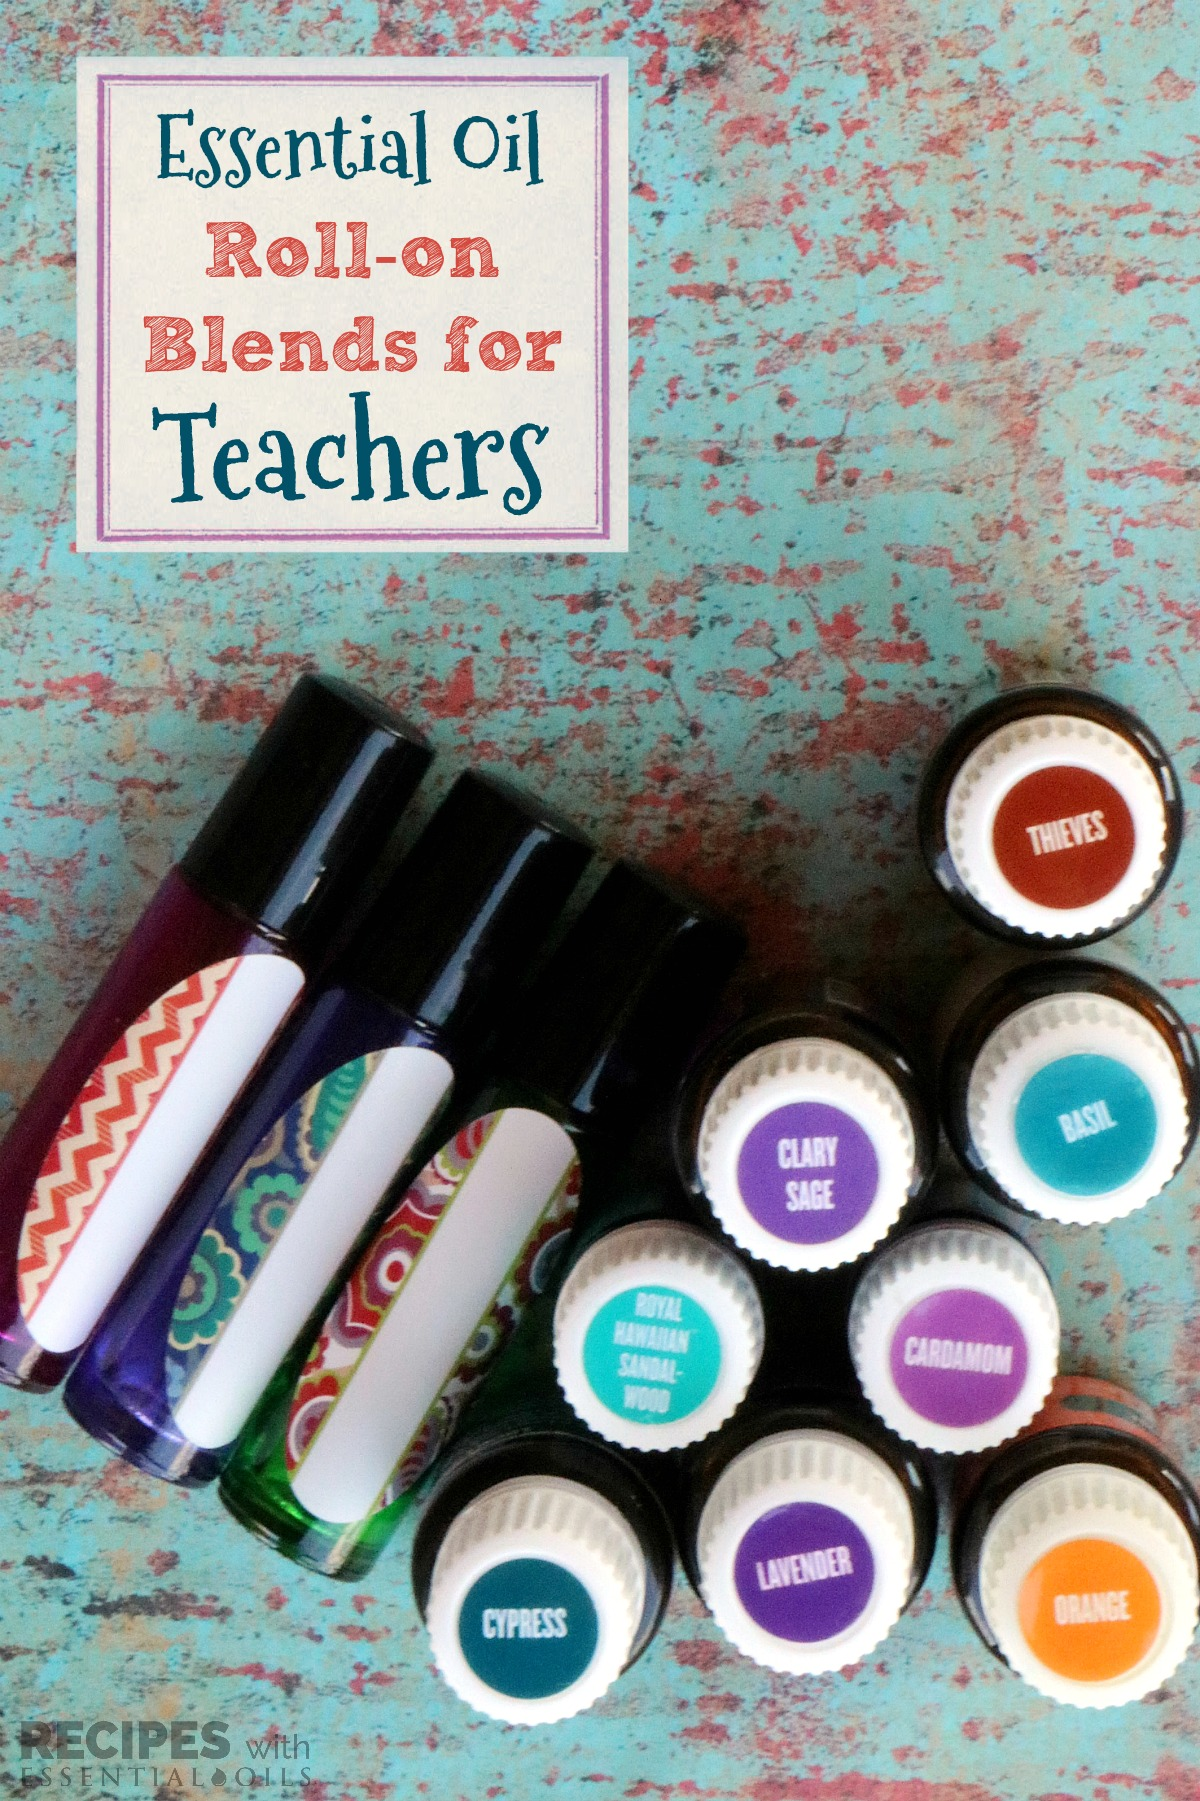 Essential Oil Roller Blends for Teachers from RecipeswithEssentialOils.com